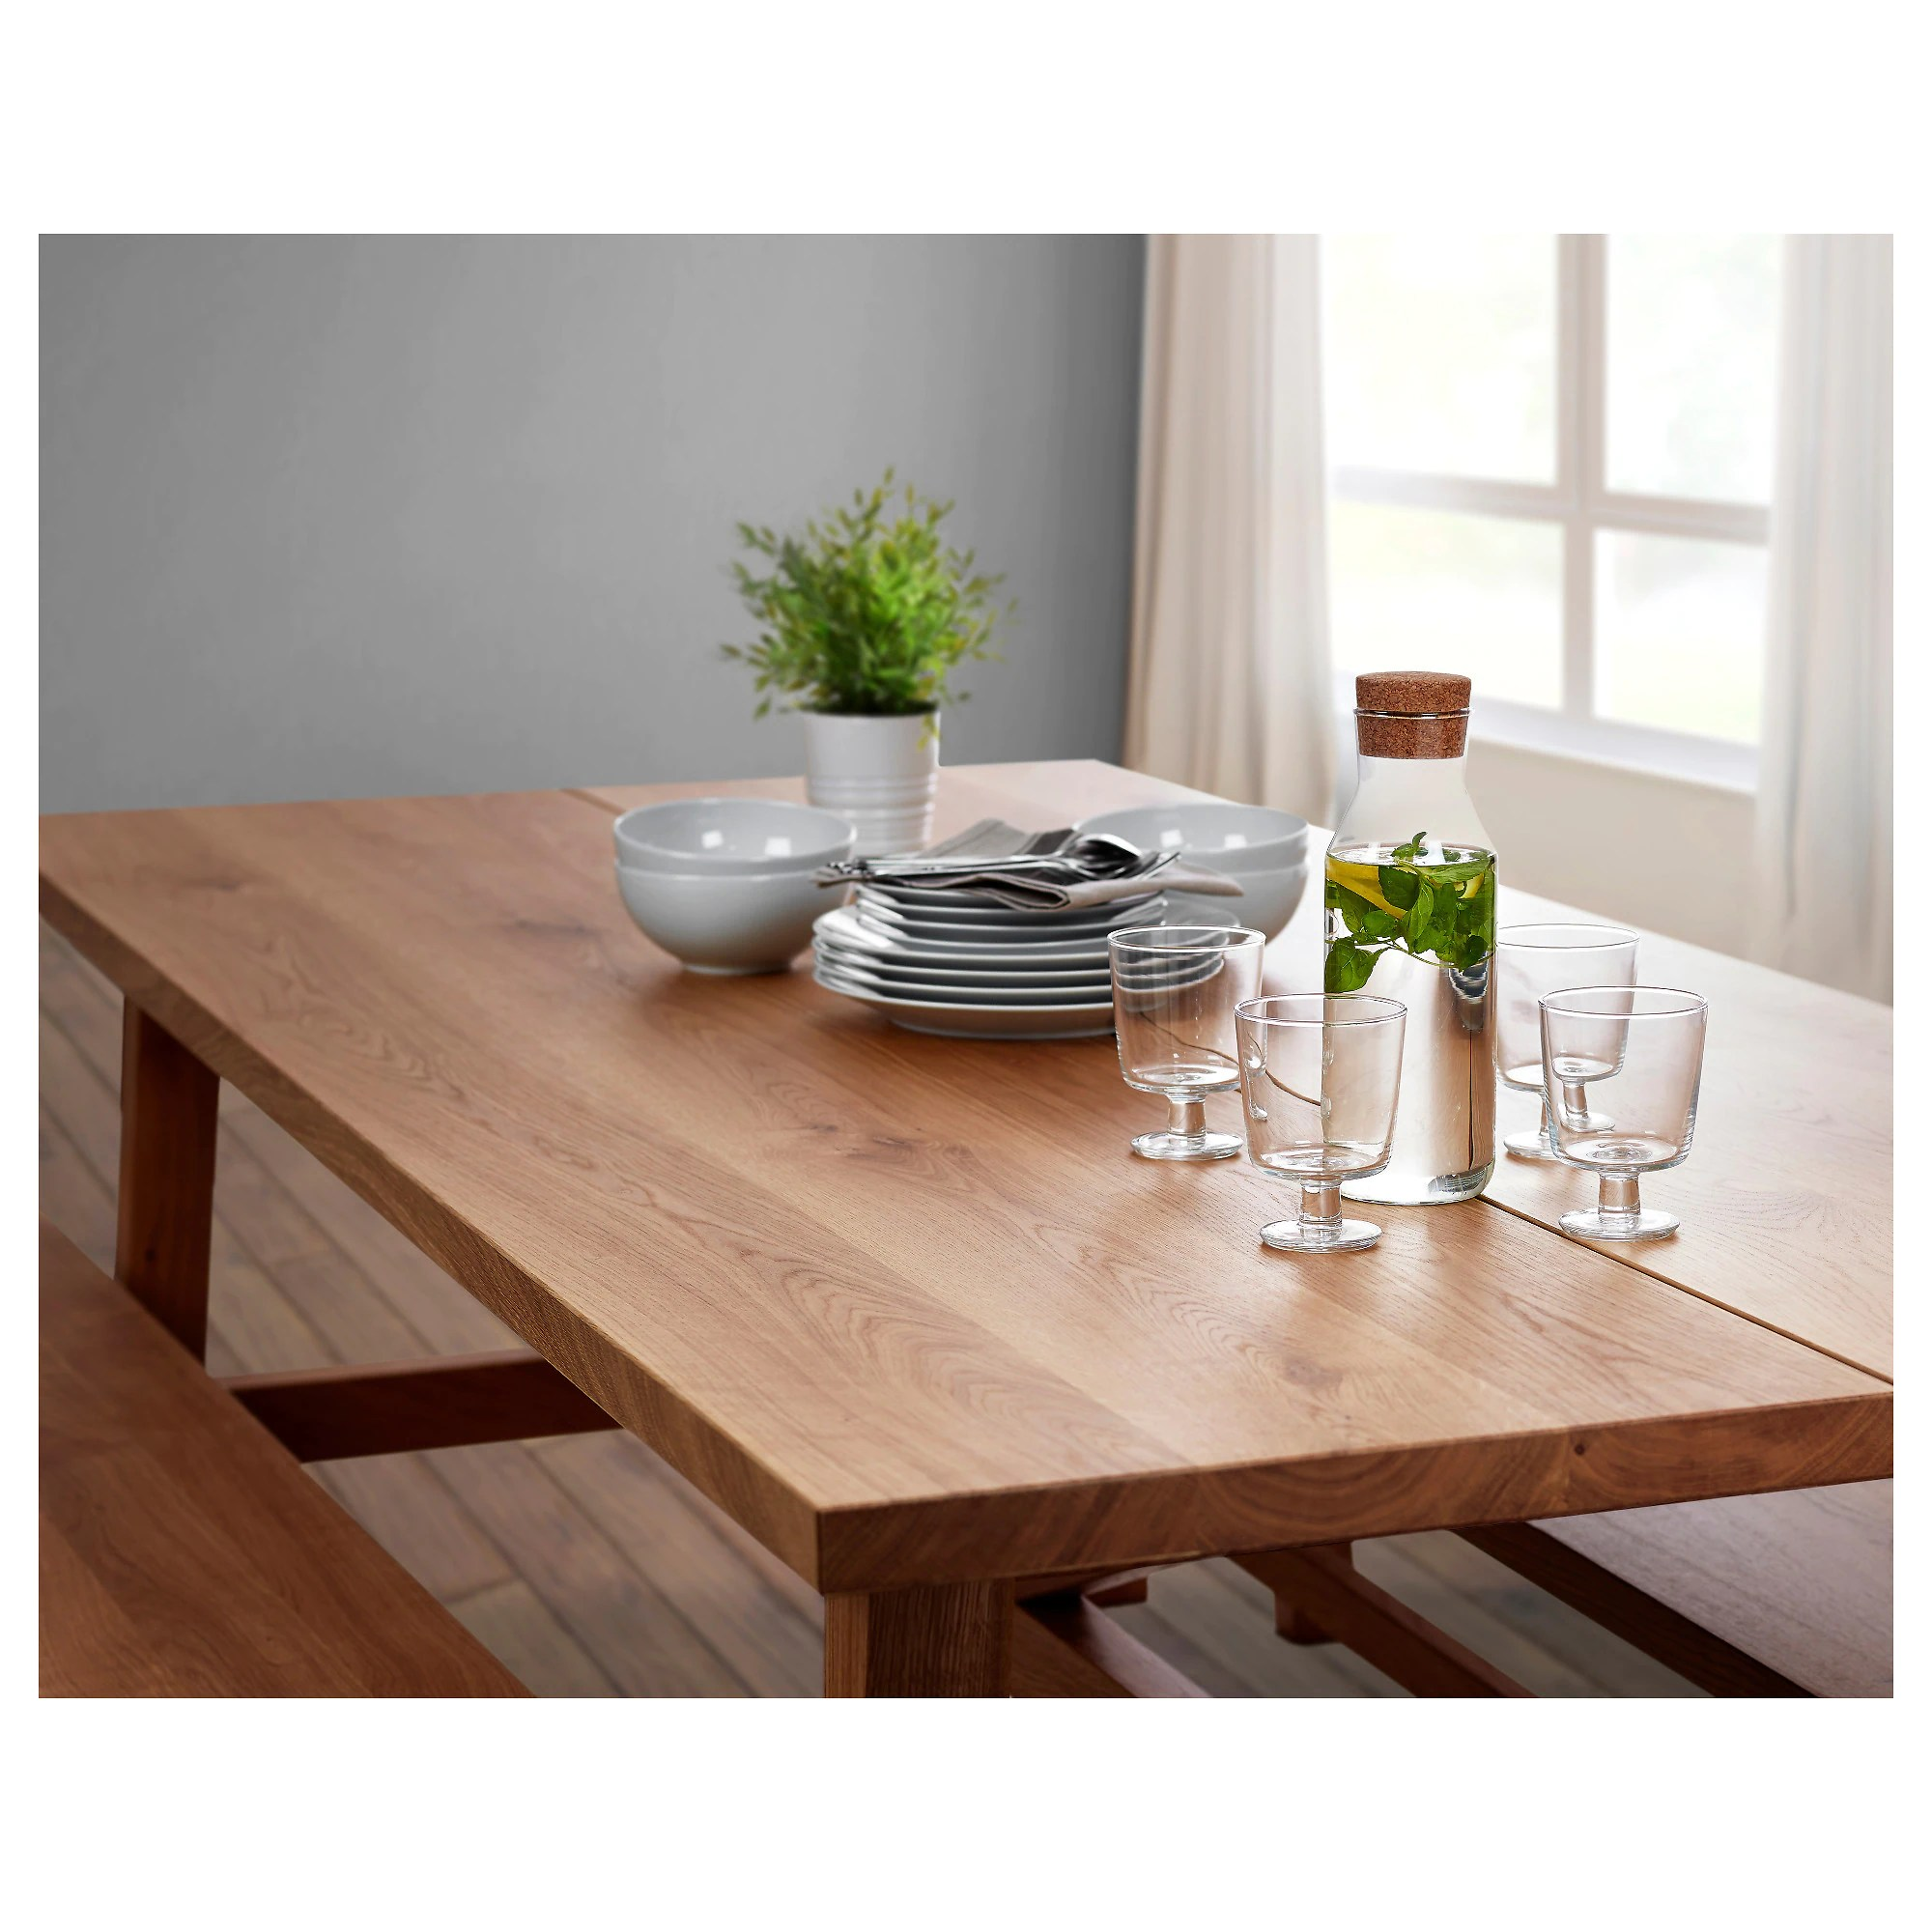 Ikea Table MÖckelby Table Oak